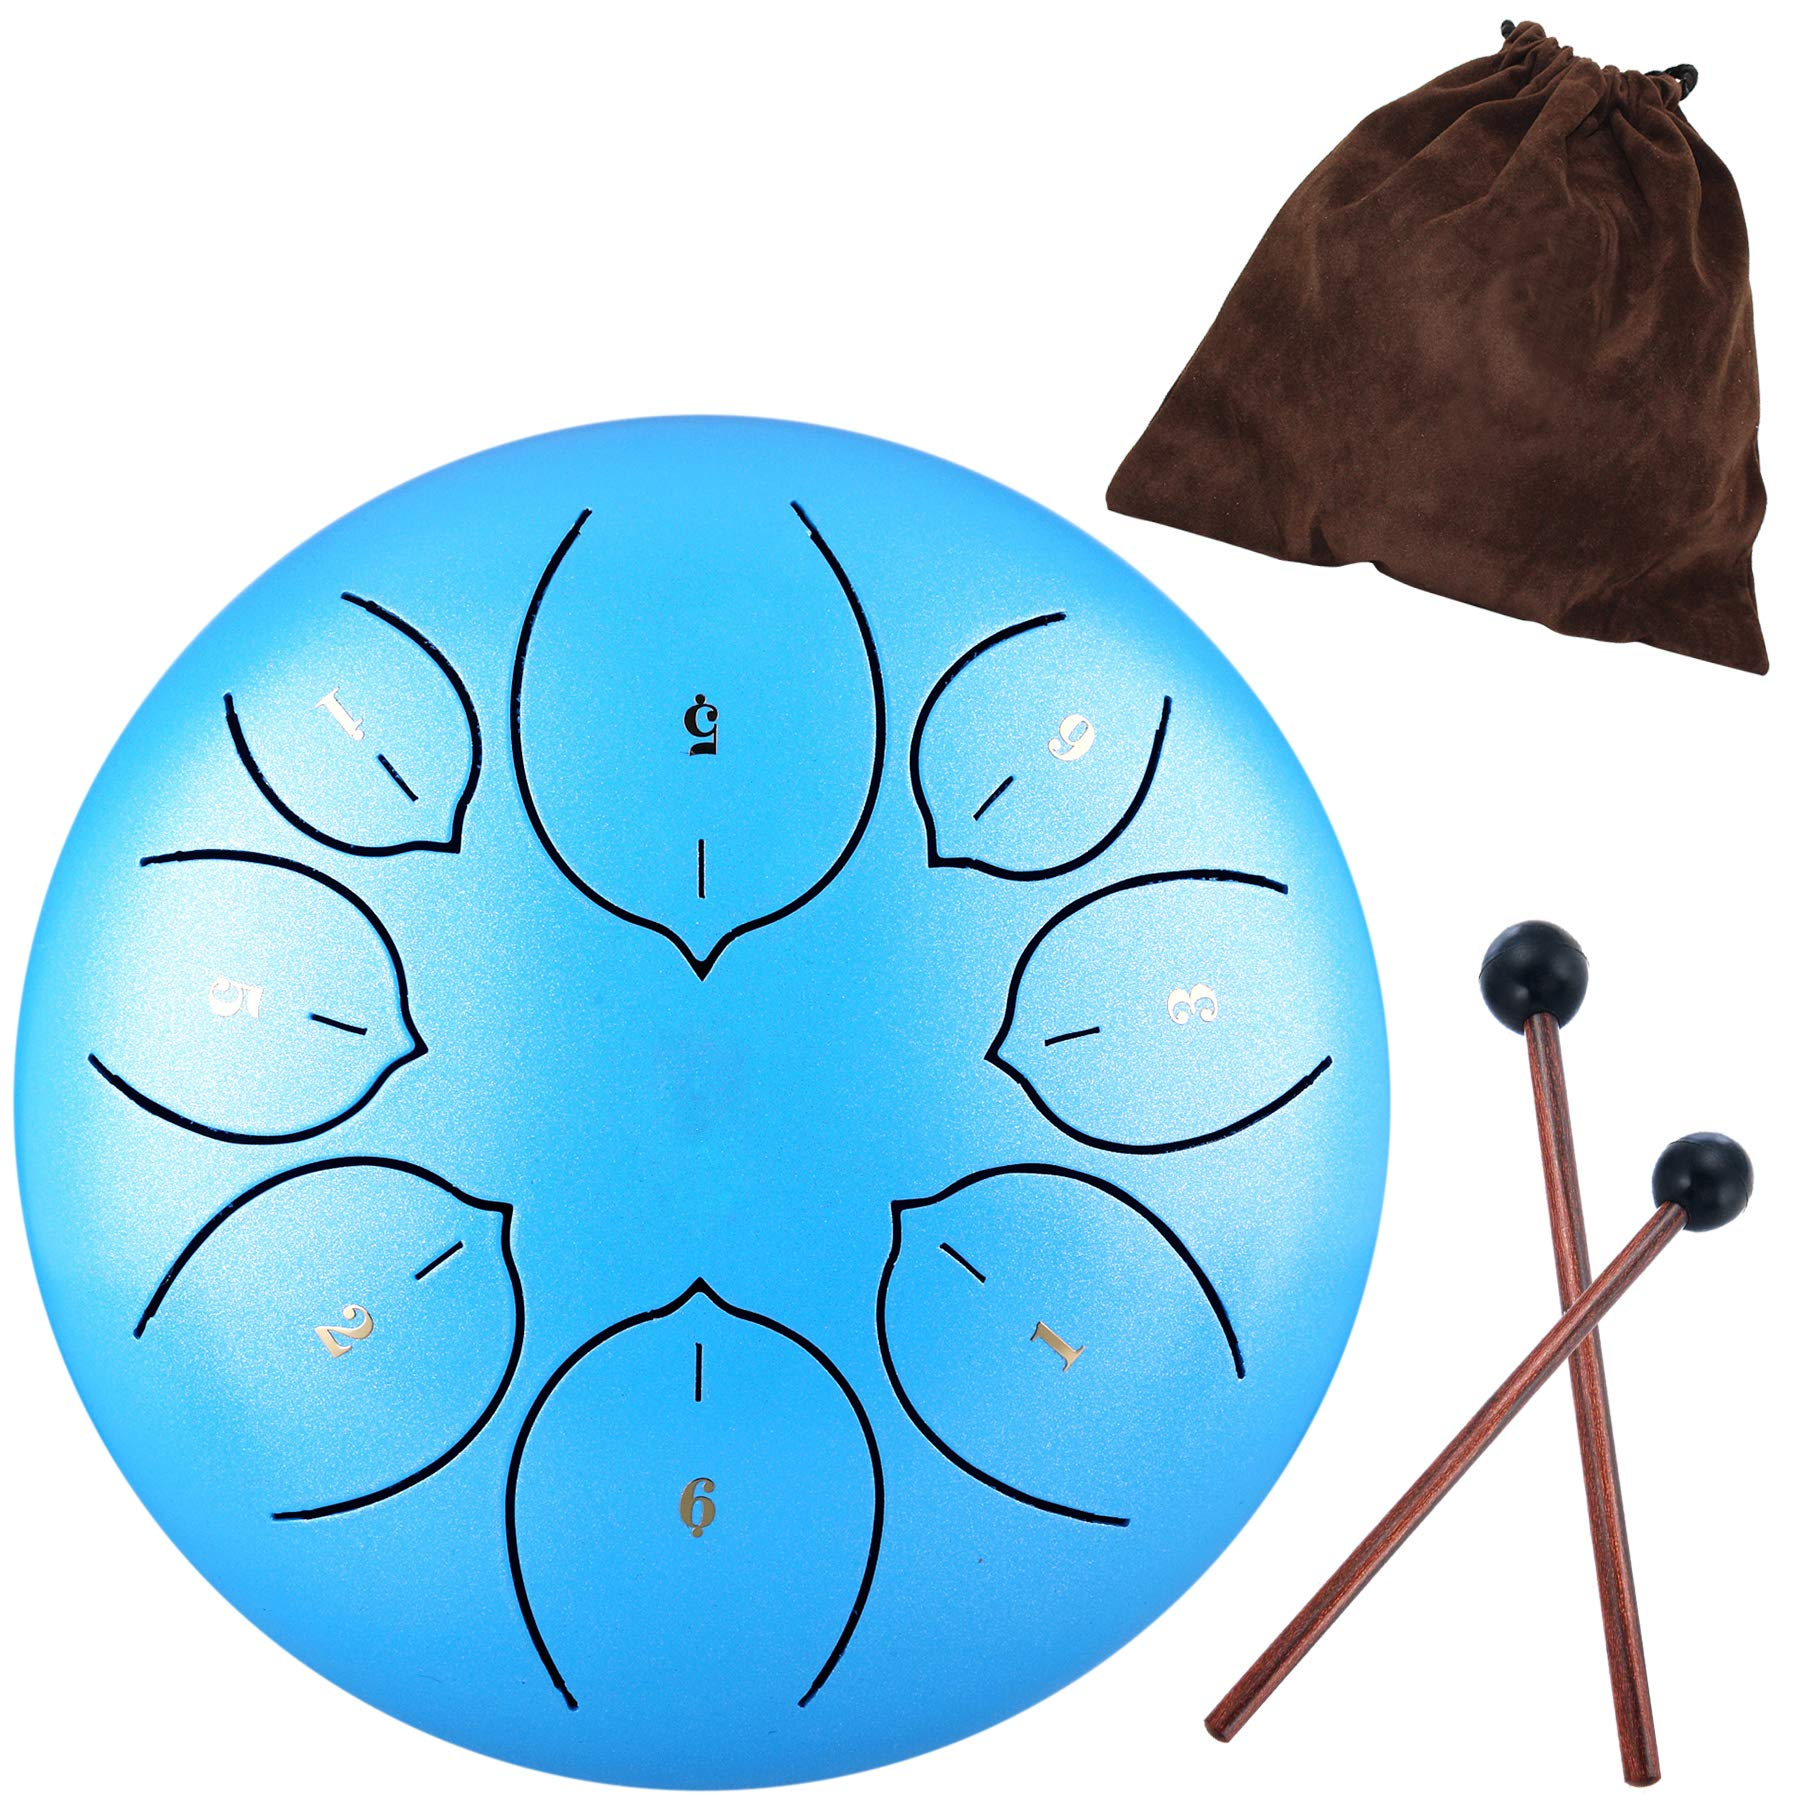 Lotus Handpan Tongue Drum 8 Notes 6 Inches Chakra Tank Drum Steel Percussion Hang Drum Instrument with Padded Travel Bag and Mallets Blue by Antetok